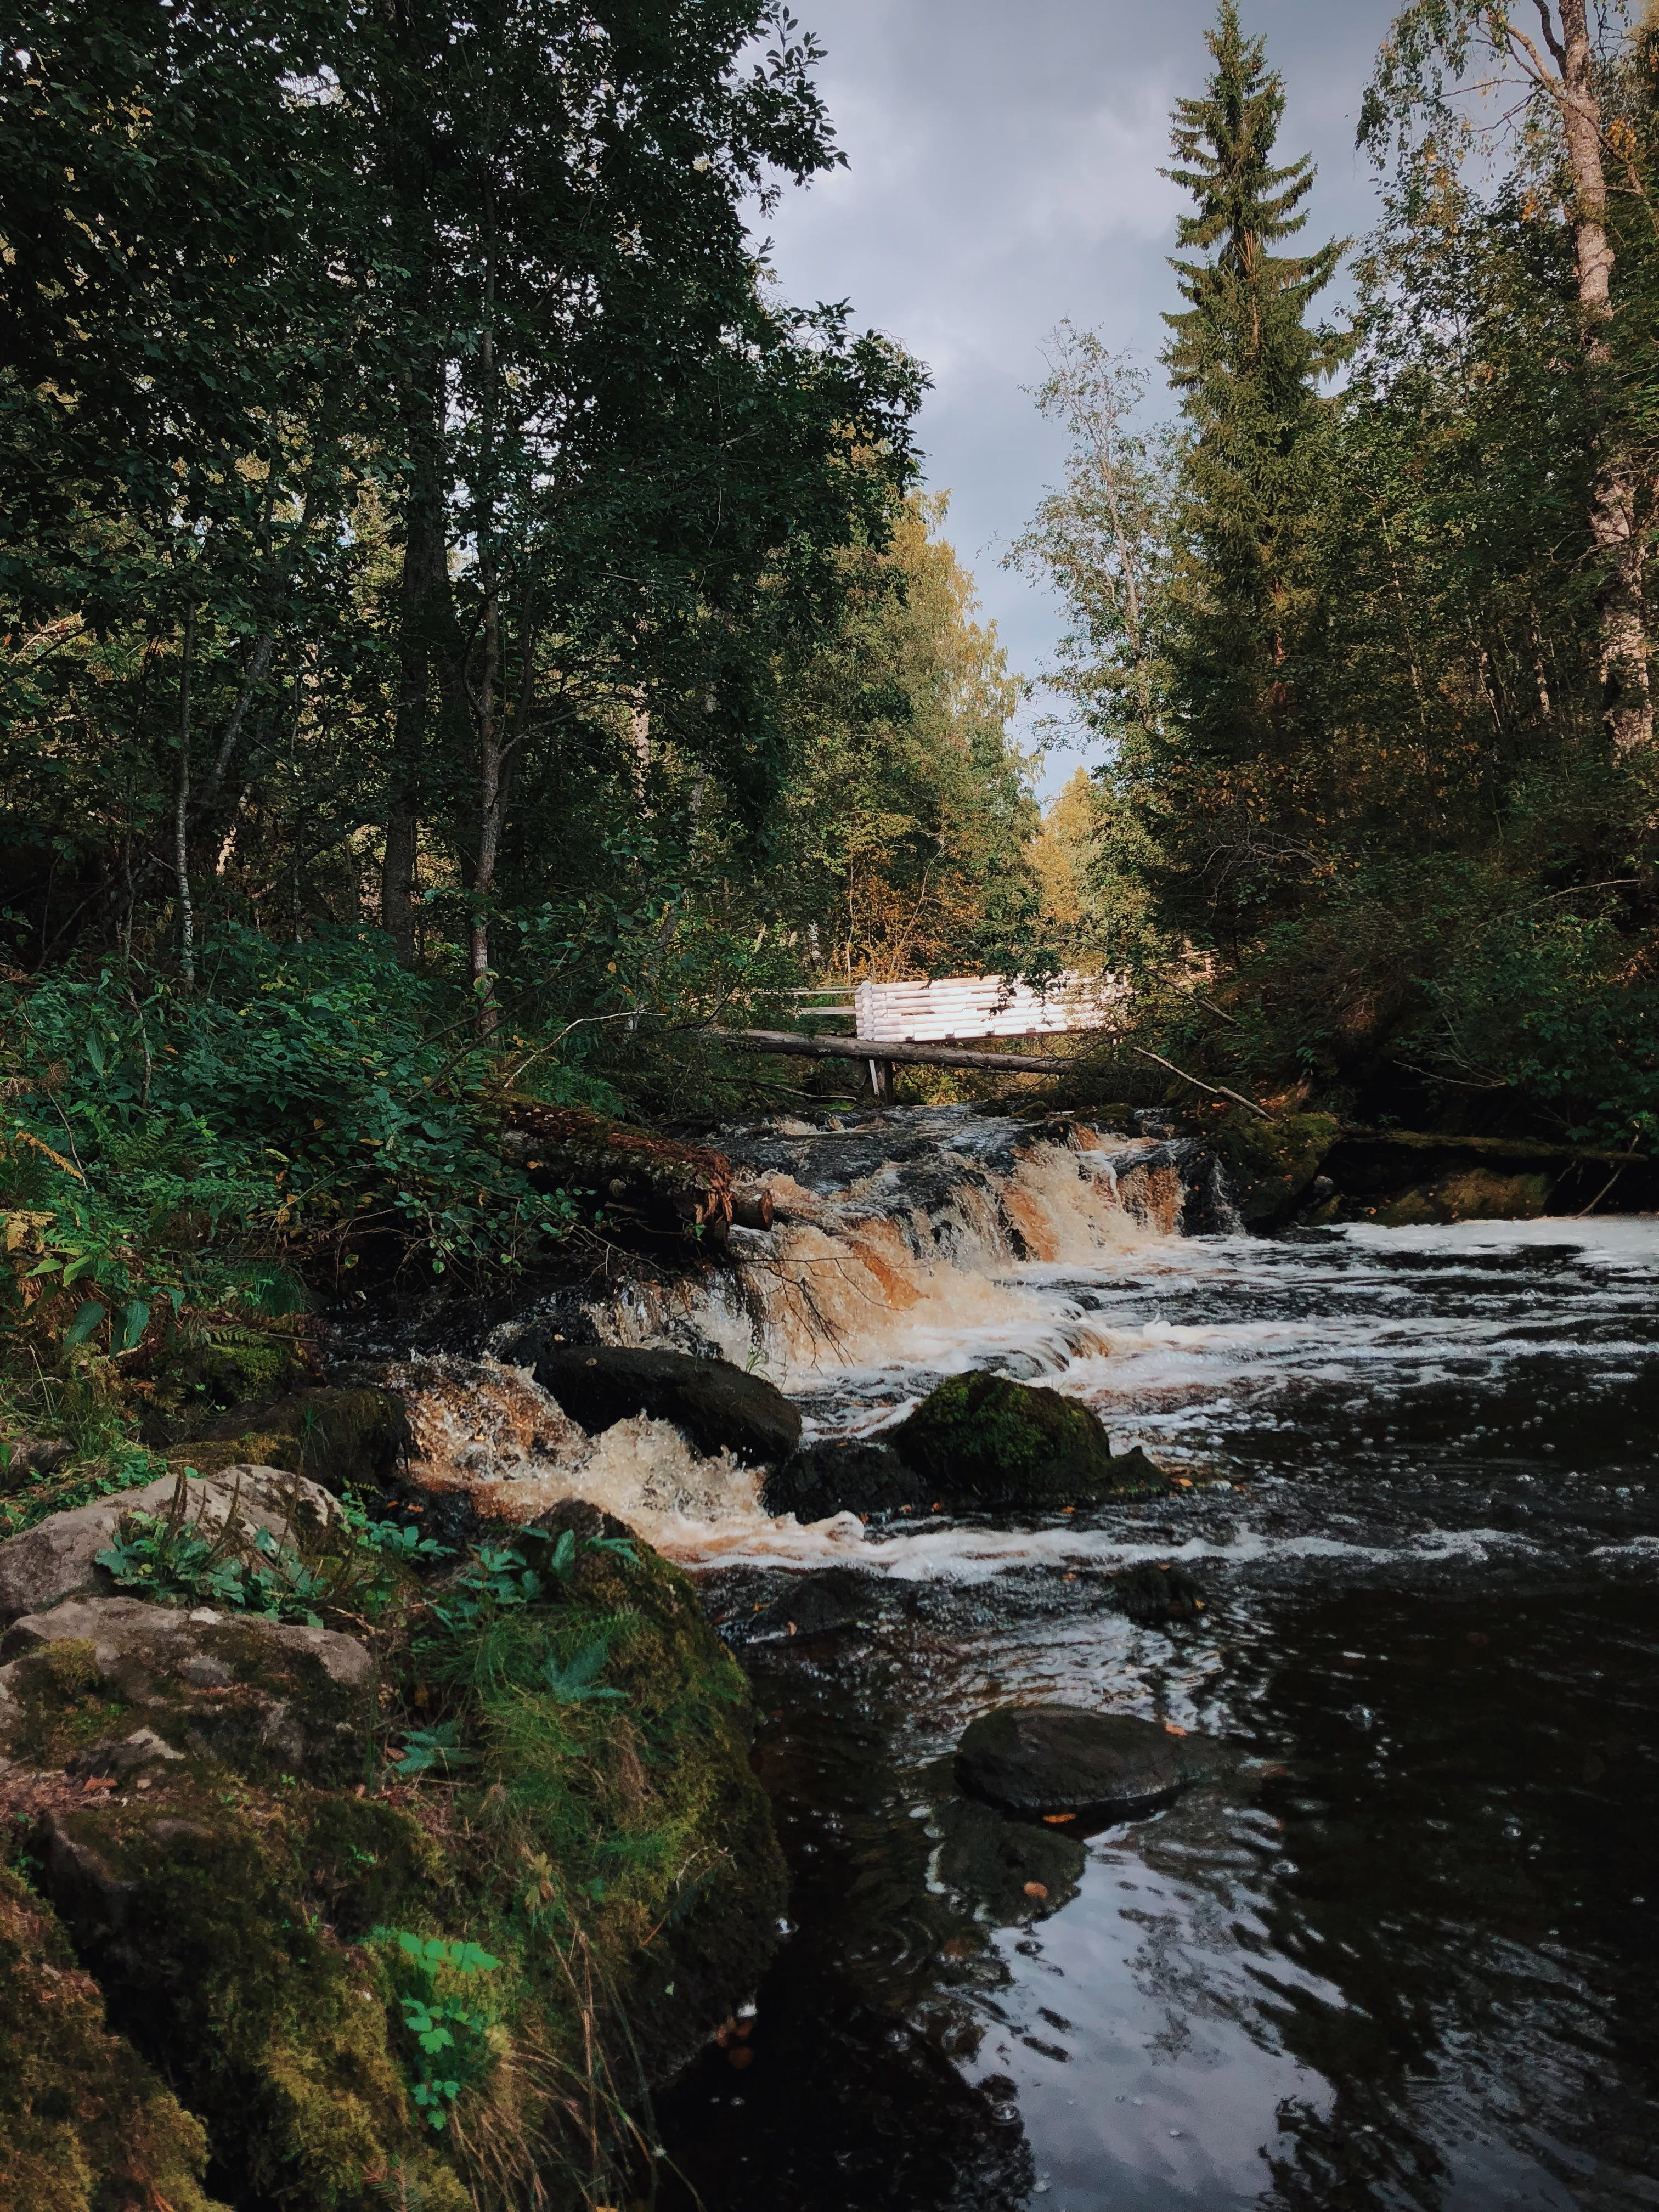 Time Lapse Photography of Flowing River Near Trees